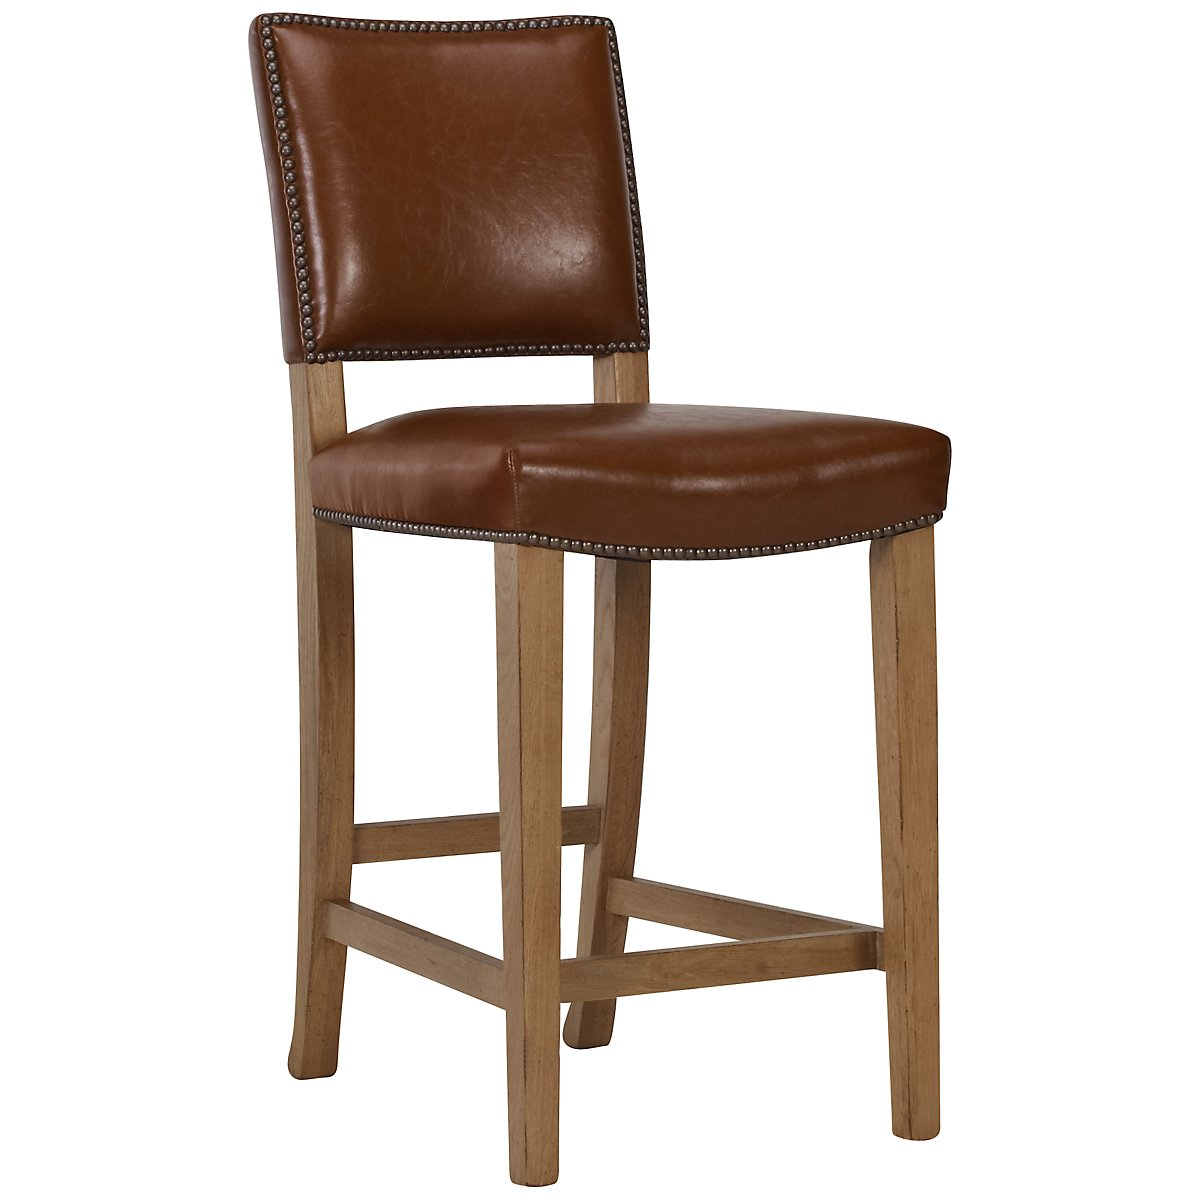 "Forecast Light Tone 24"" Upholstered Barstool"